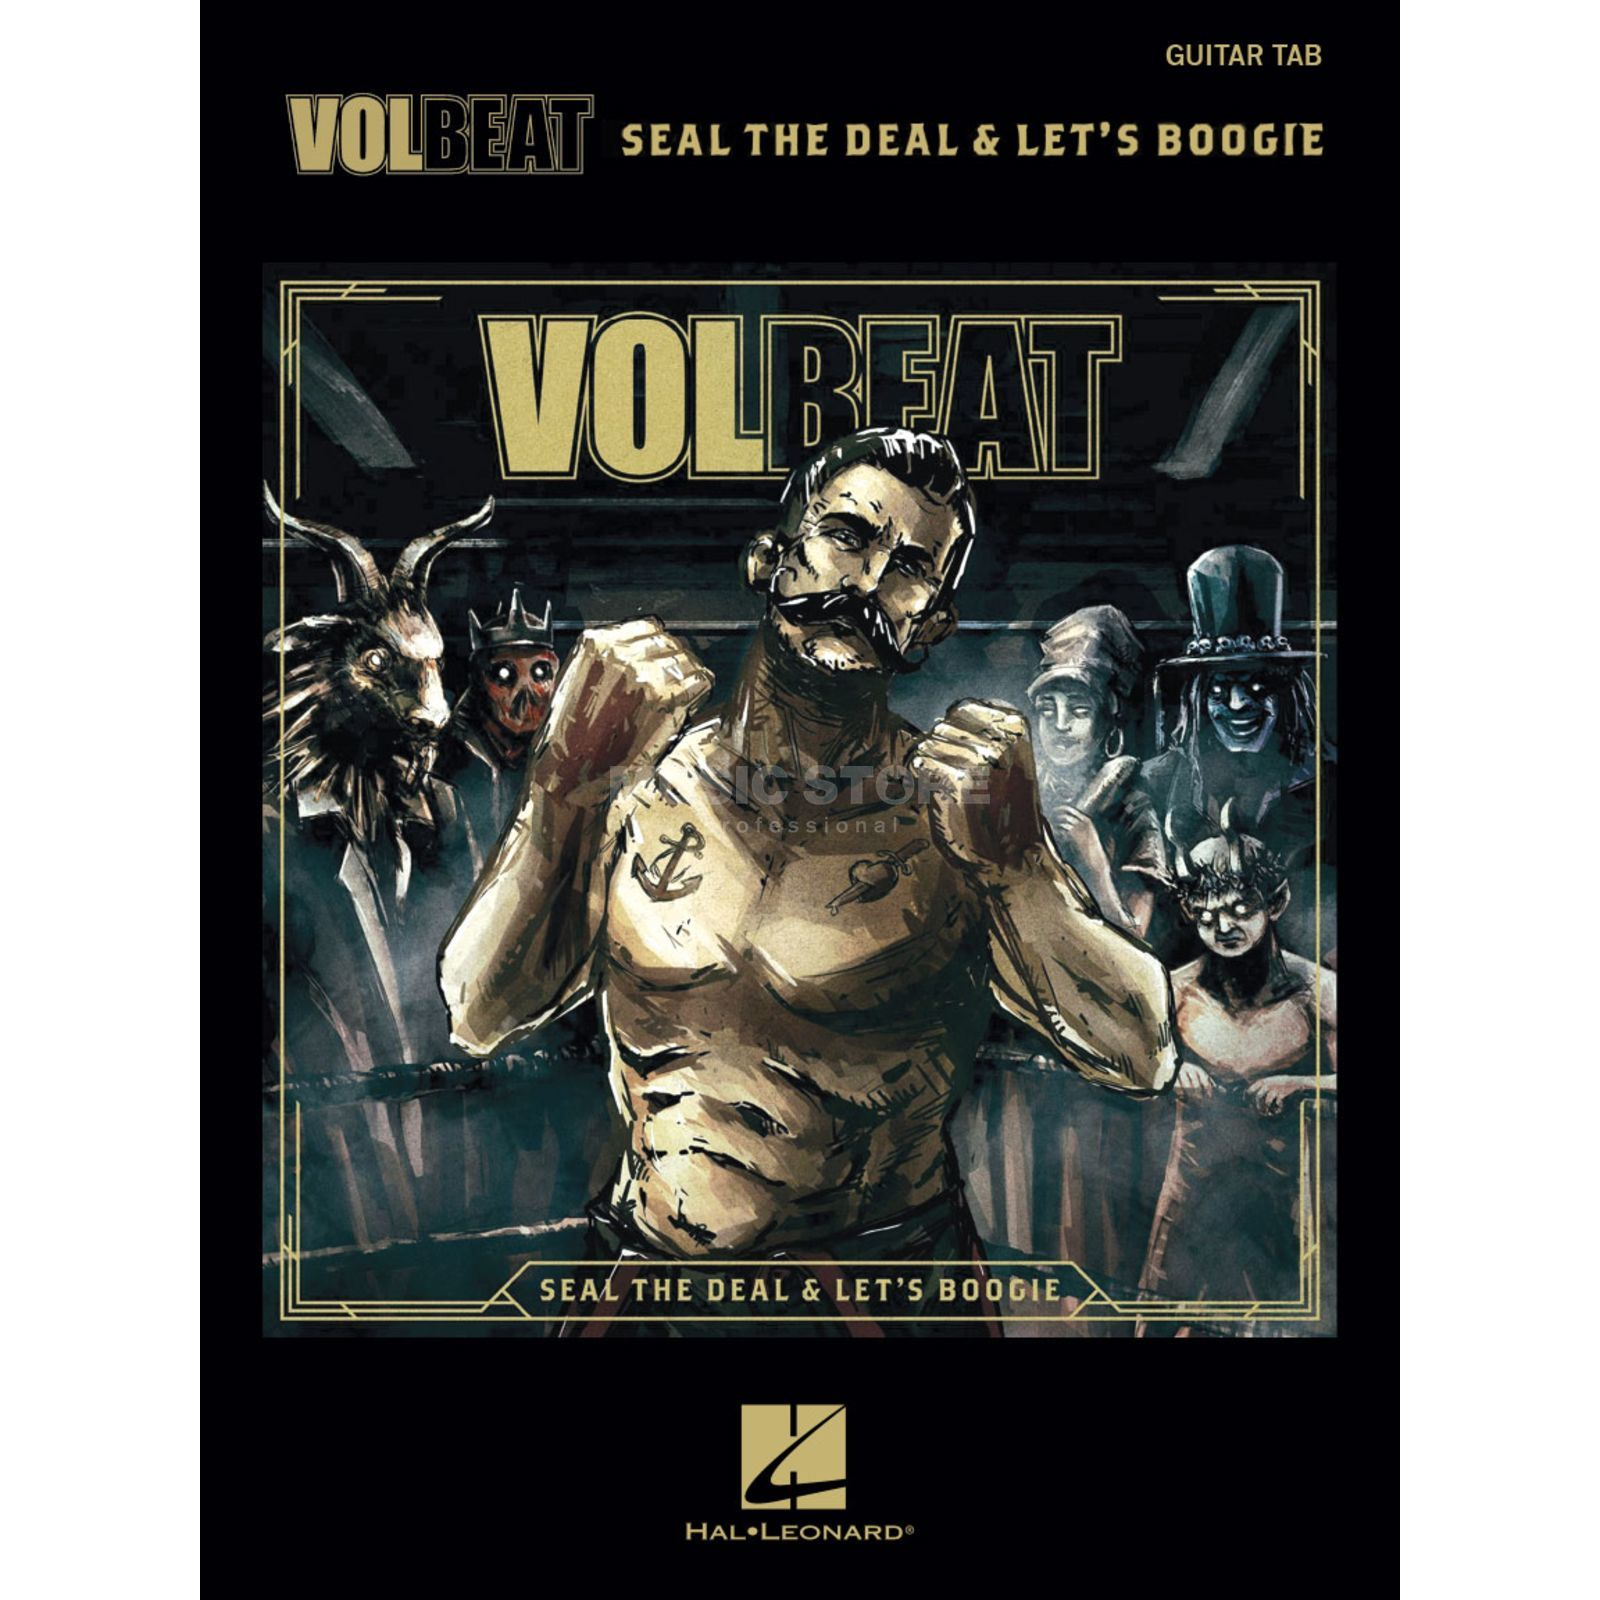 Hal Leonard Volbeat: Seal The Deal & Let's Boogie Produktbillede